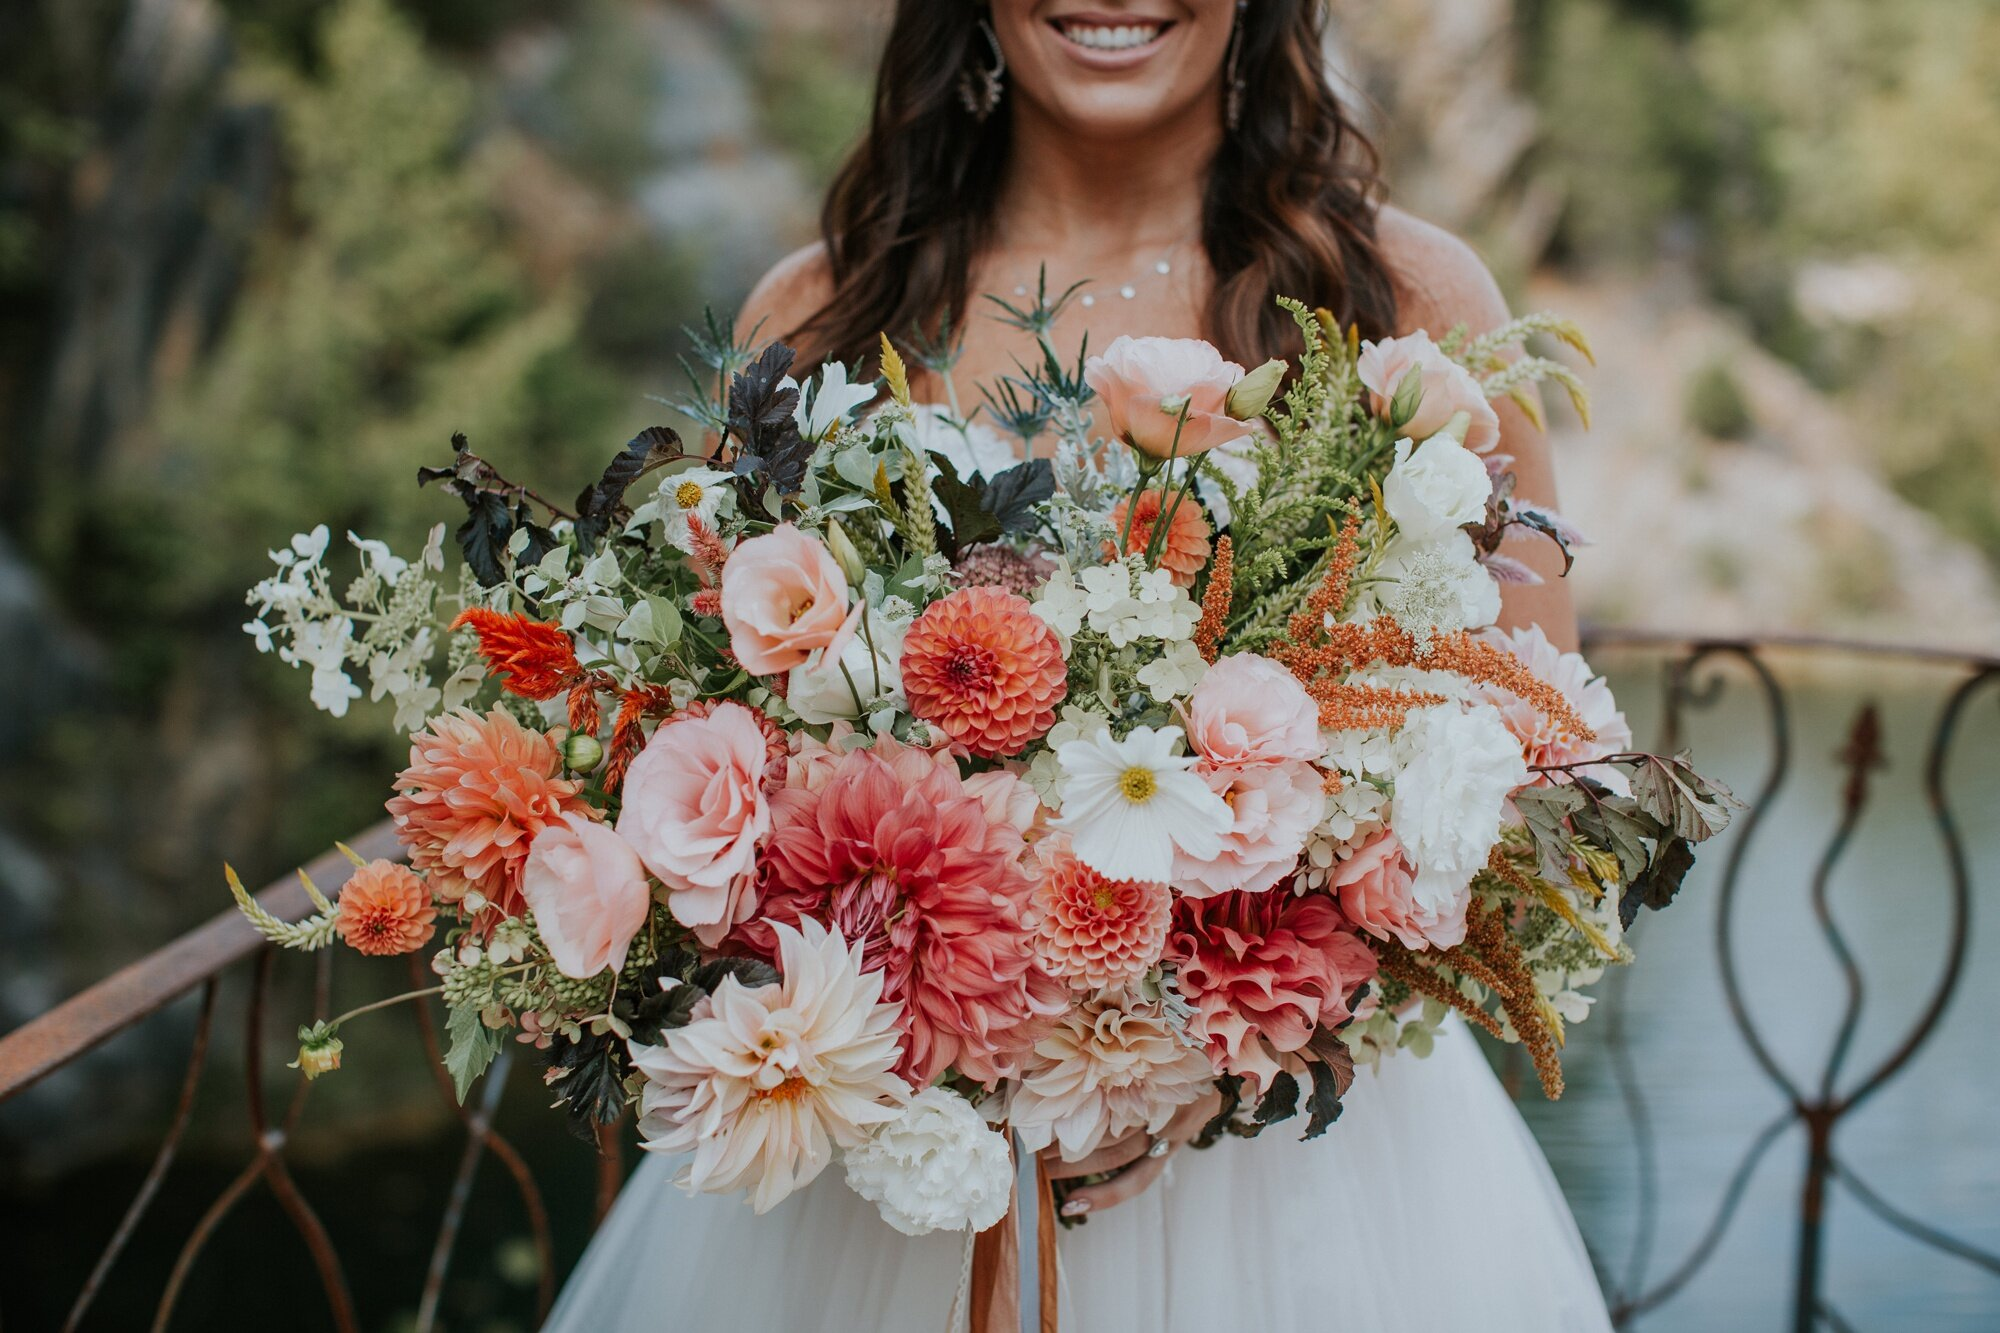 waterstone-venue-johnson-city-tennessee-rustic-adventurous-katy-sergent-asheville-knoxville-wedding-photography_0012.jpg